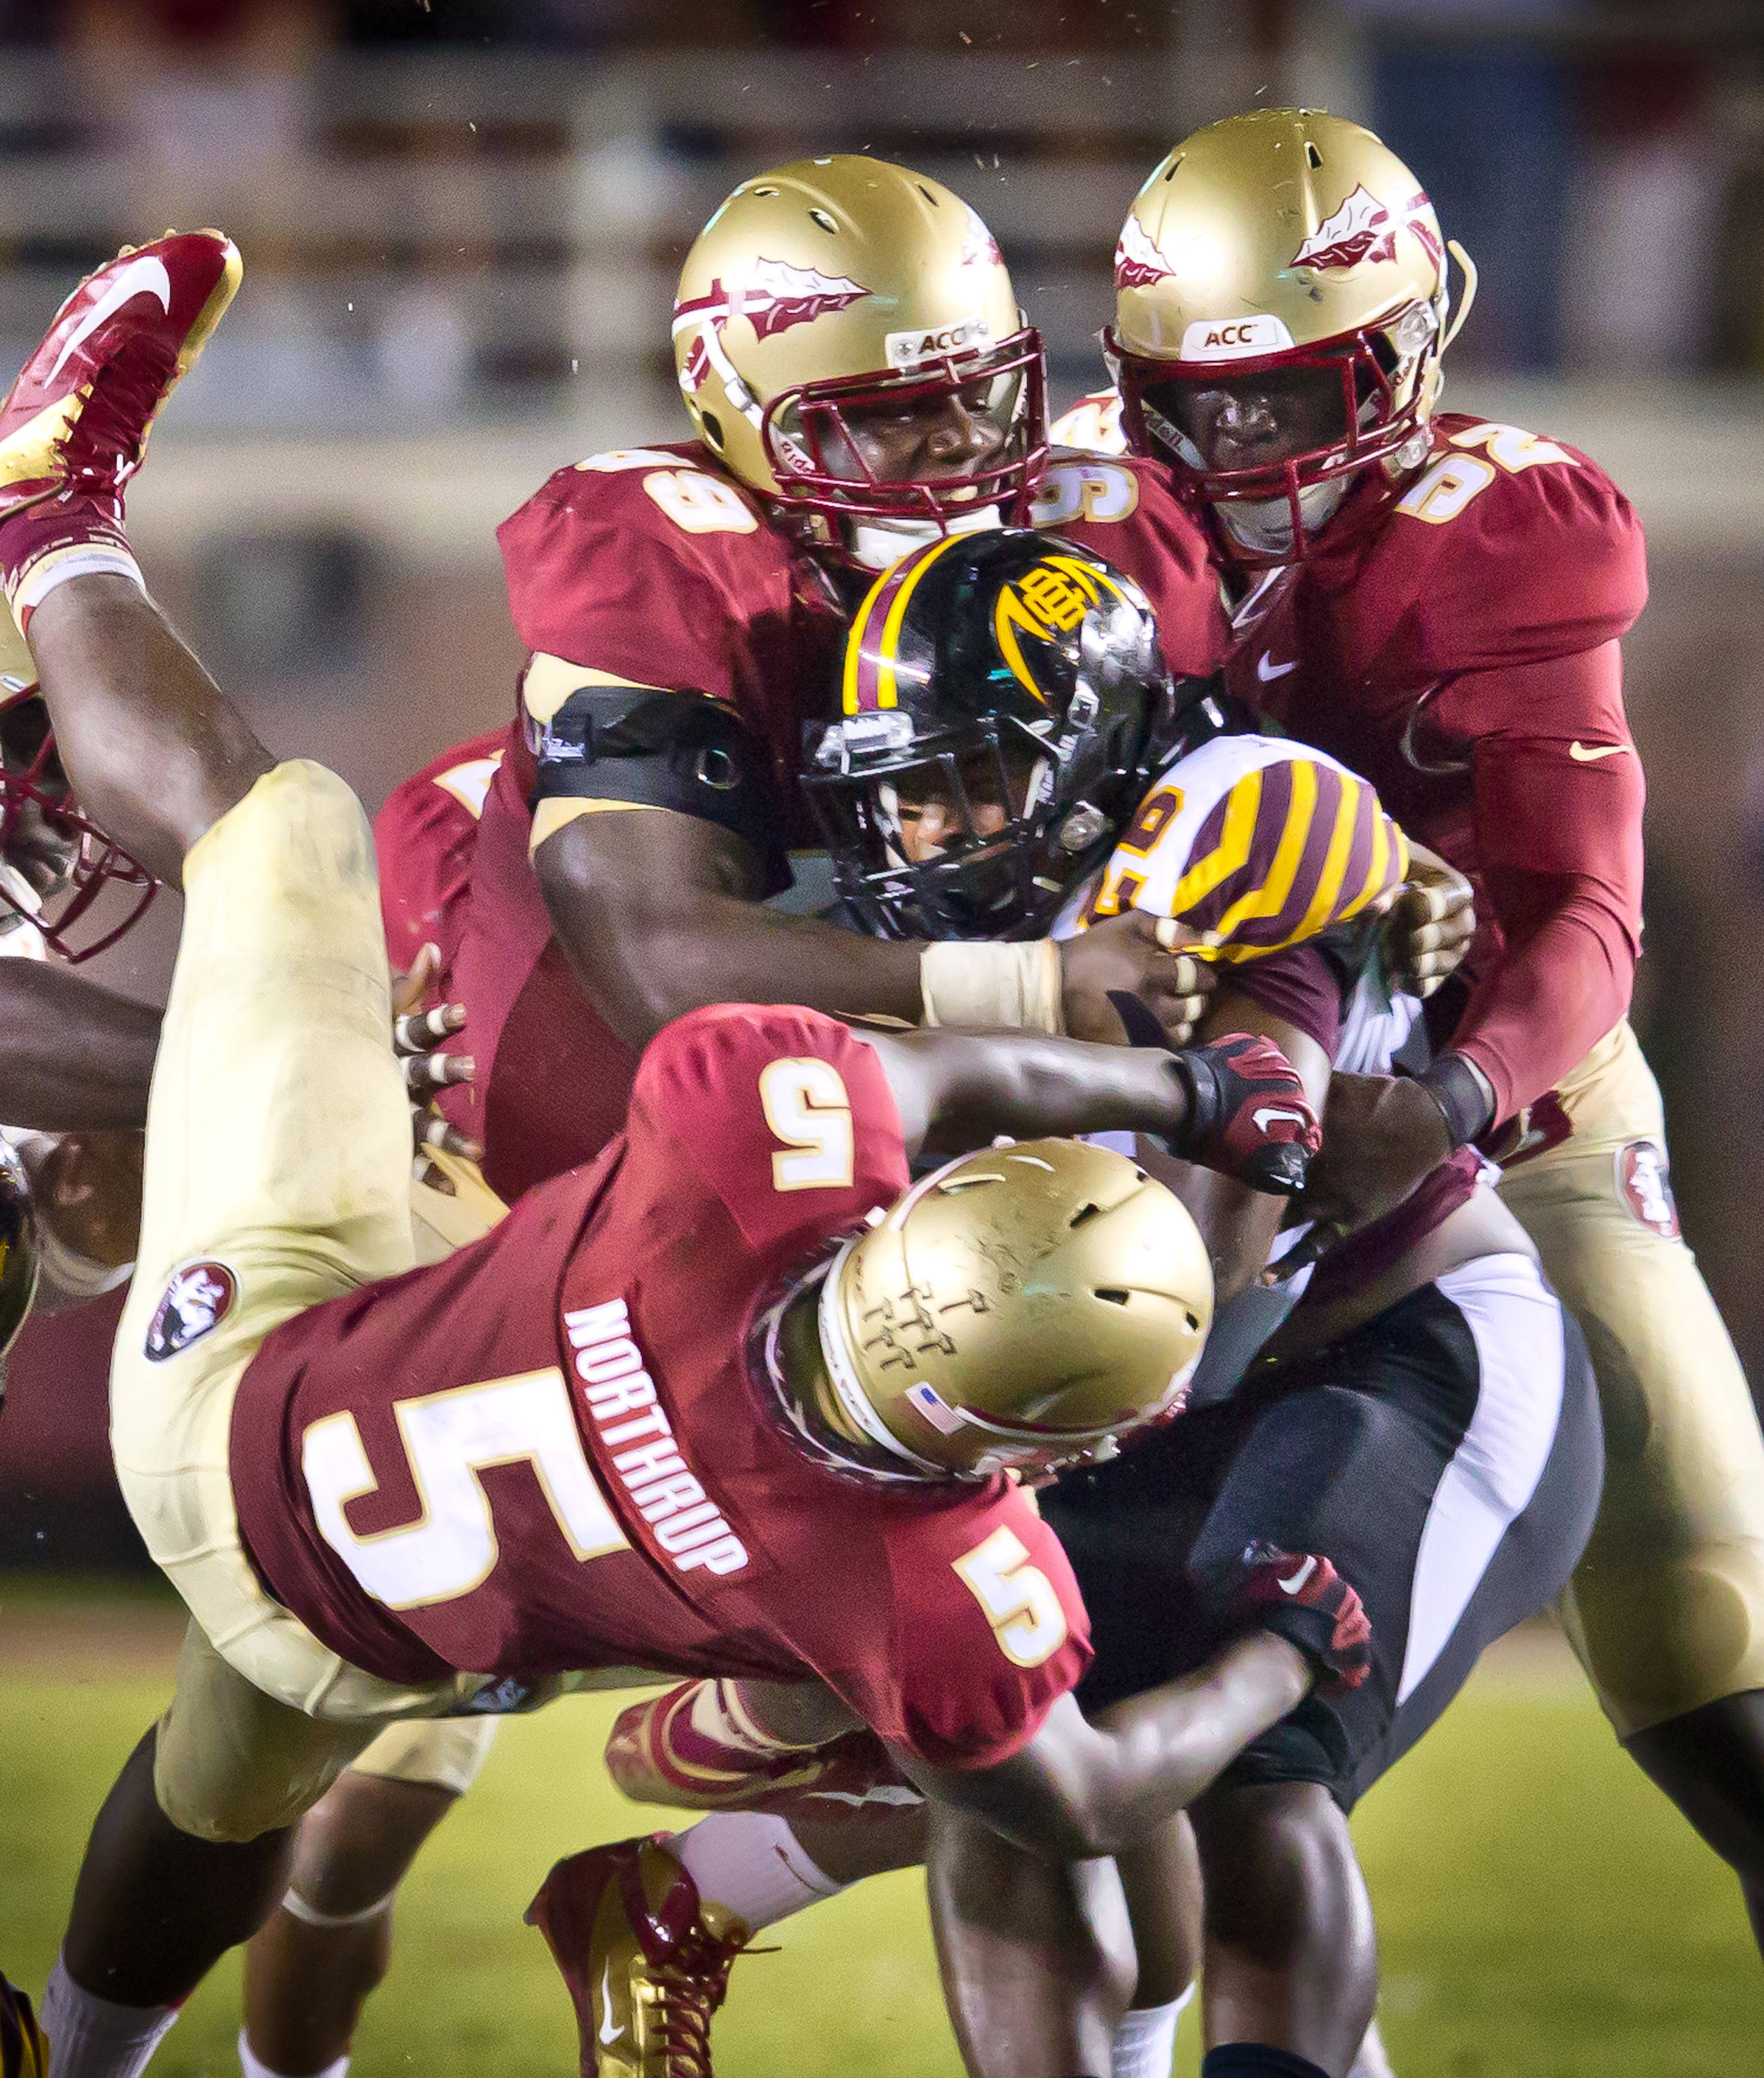 Nile Lawrence-Stample (99), Ukeme Eligwe (52), and Reggie Northrup (5) make the defensive stop.